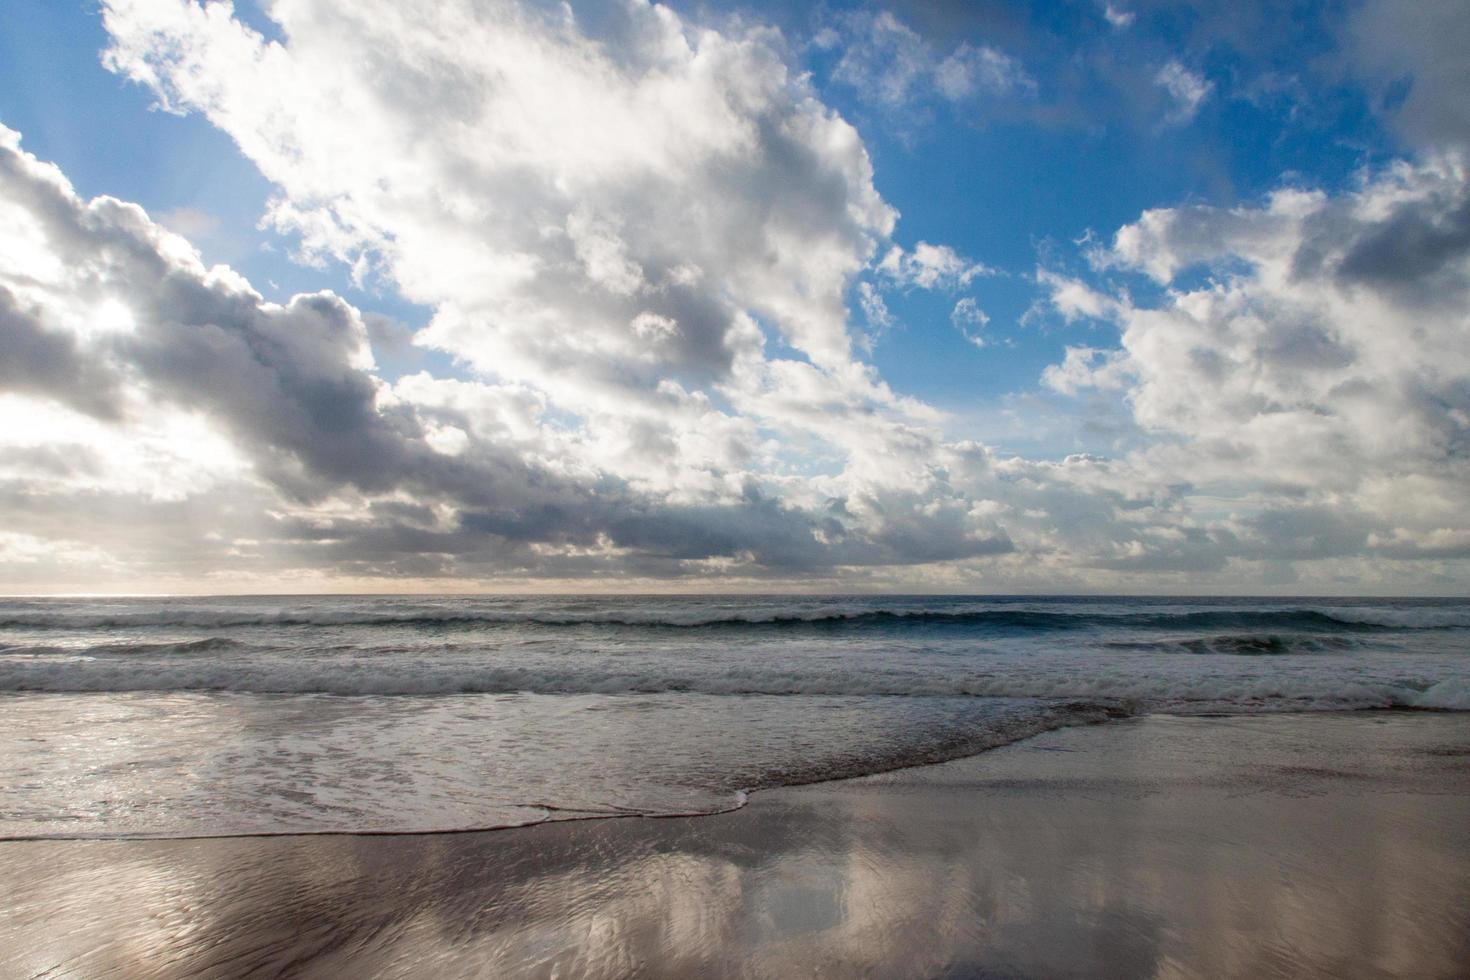 Beach with waves and cloudy blue sky photo